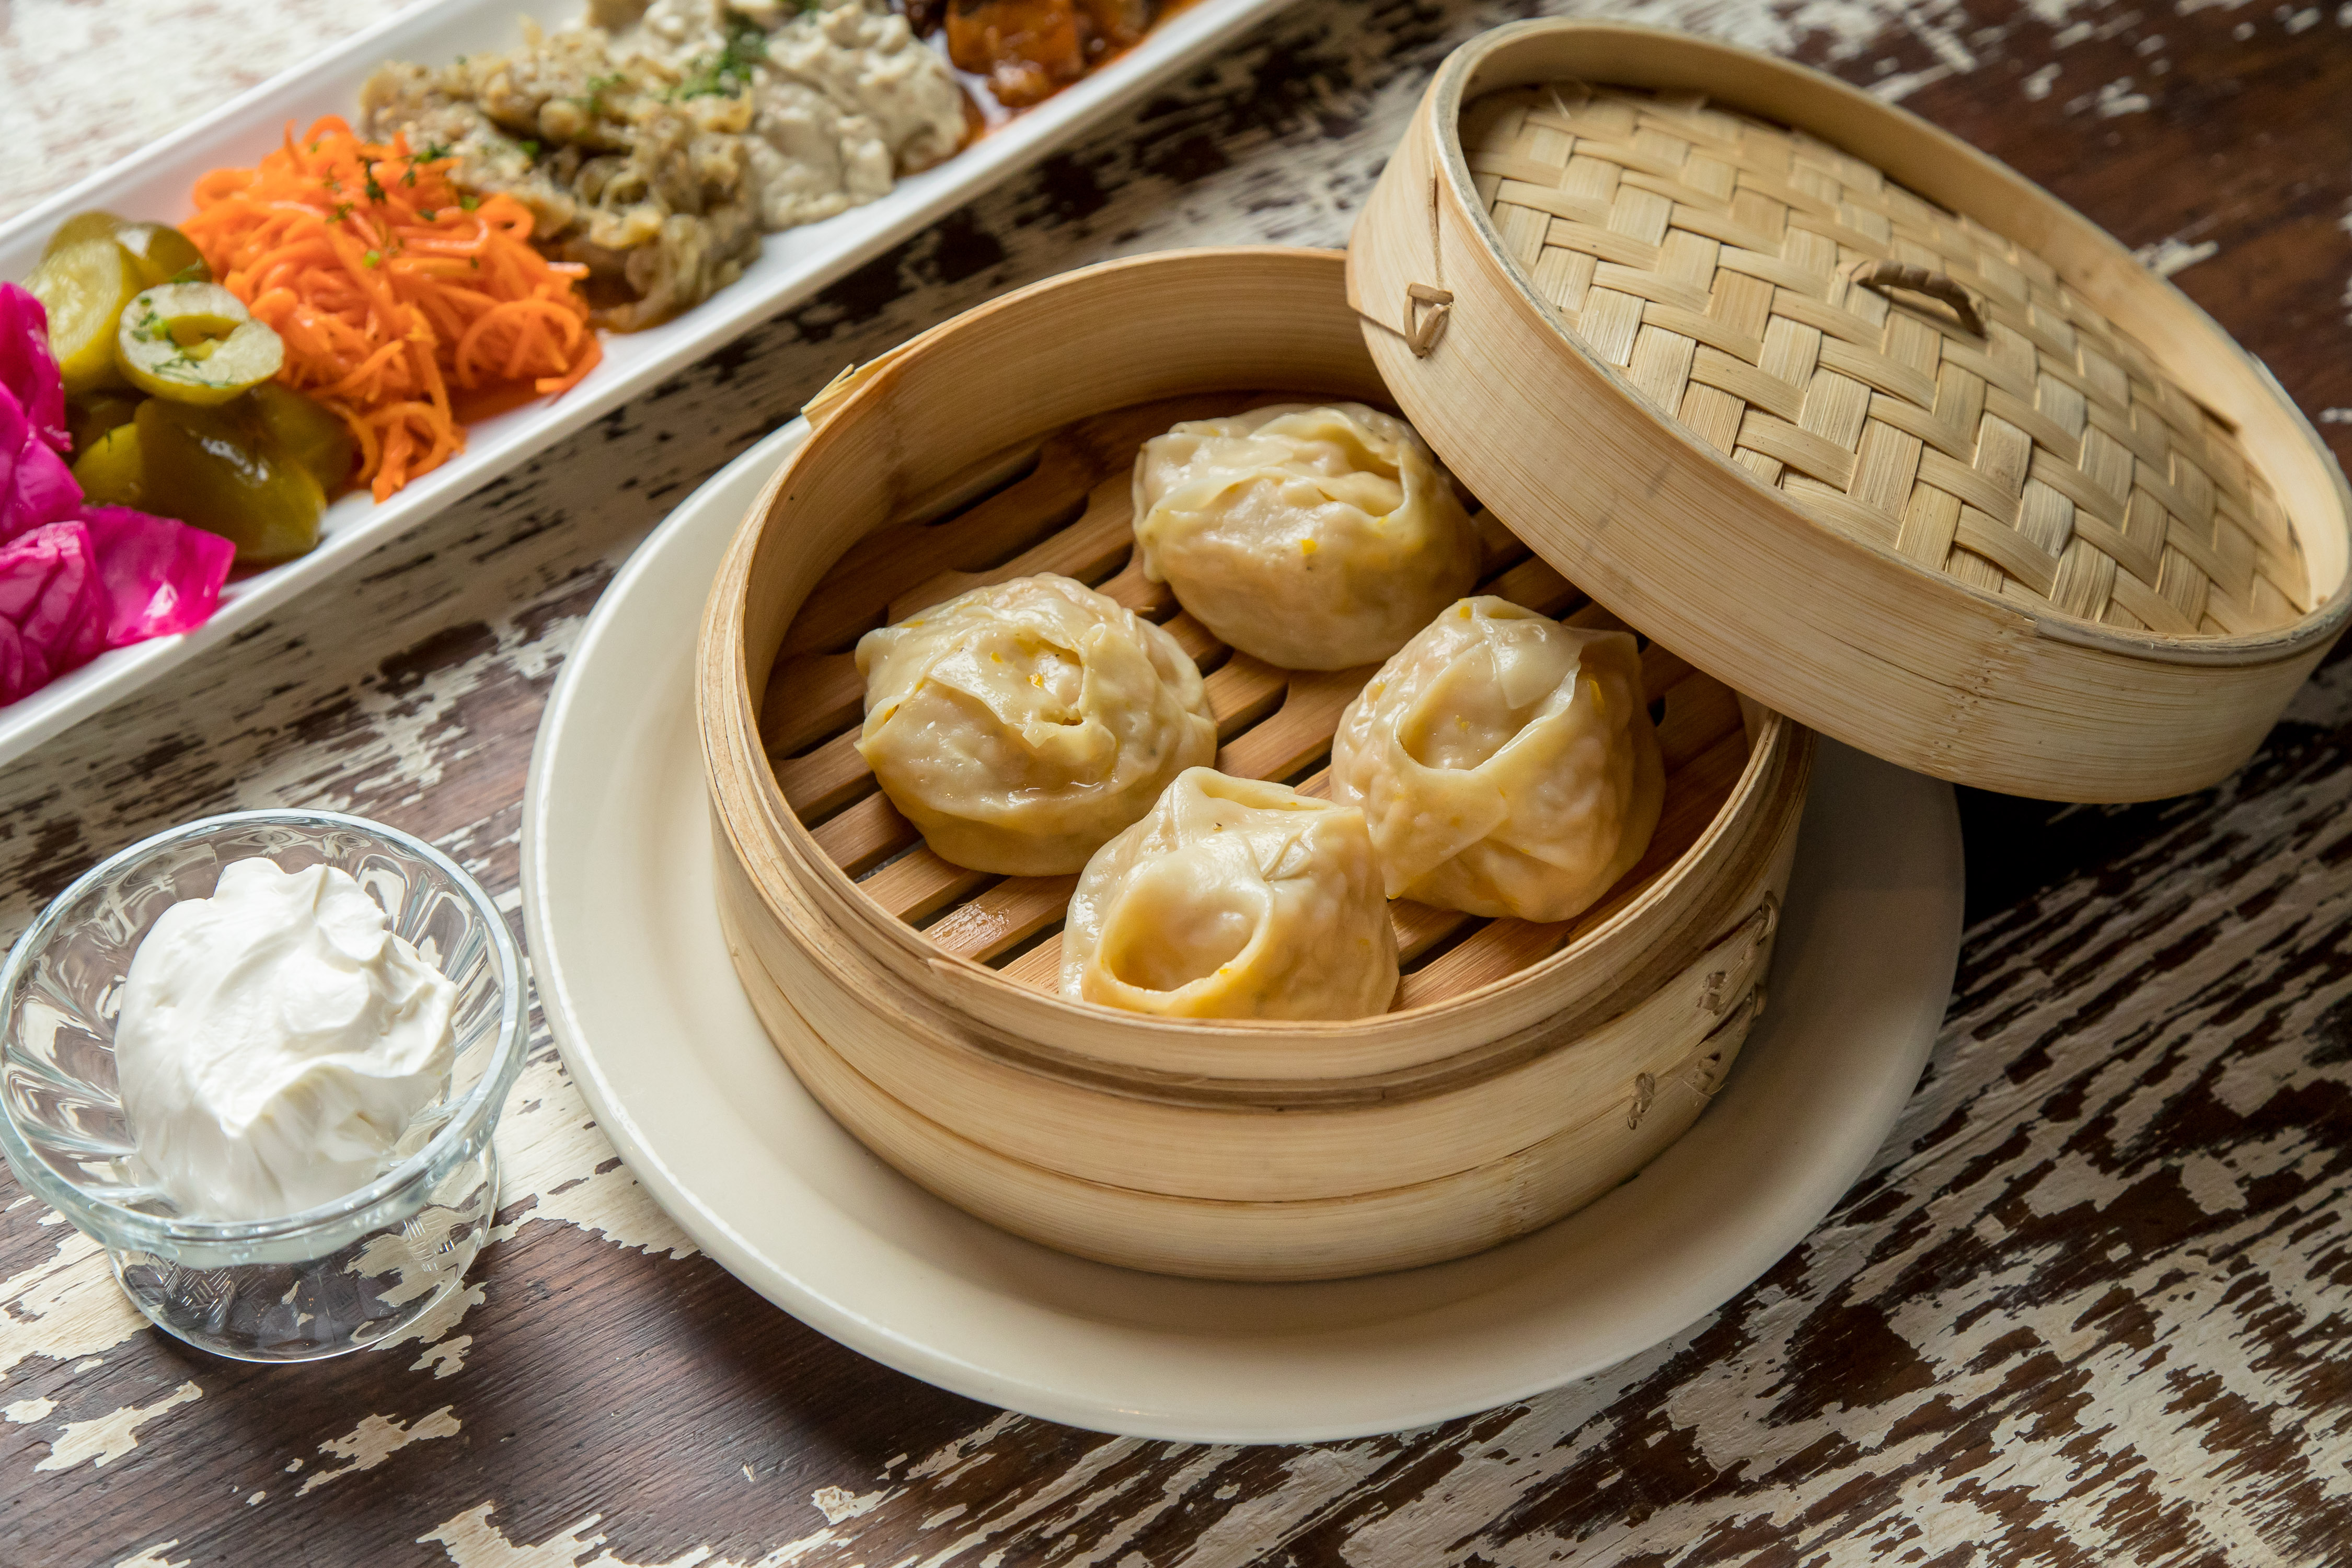 Dumplings in a bamboo container, with the lid half-off